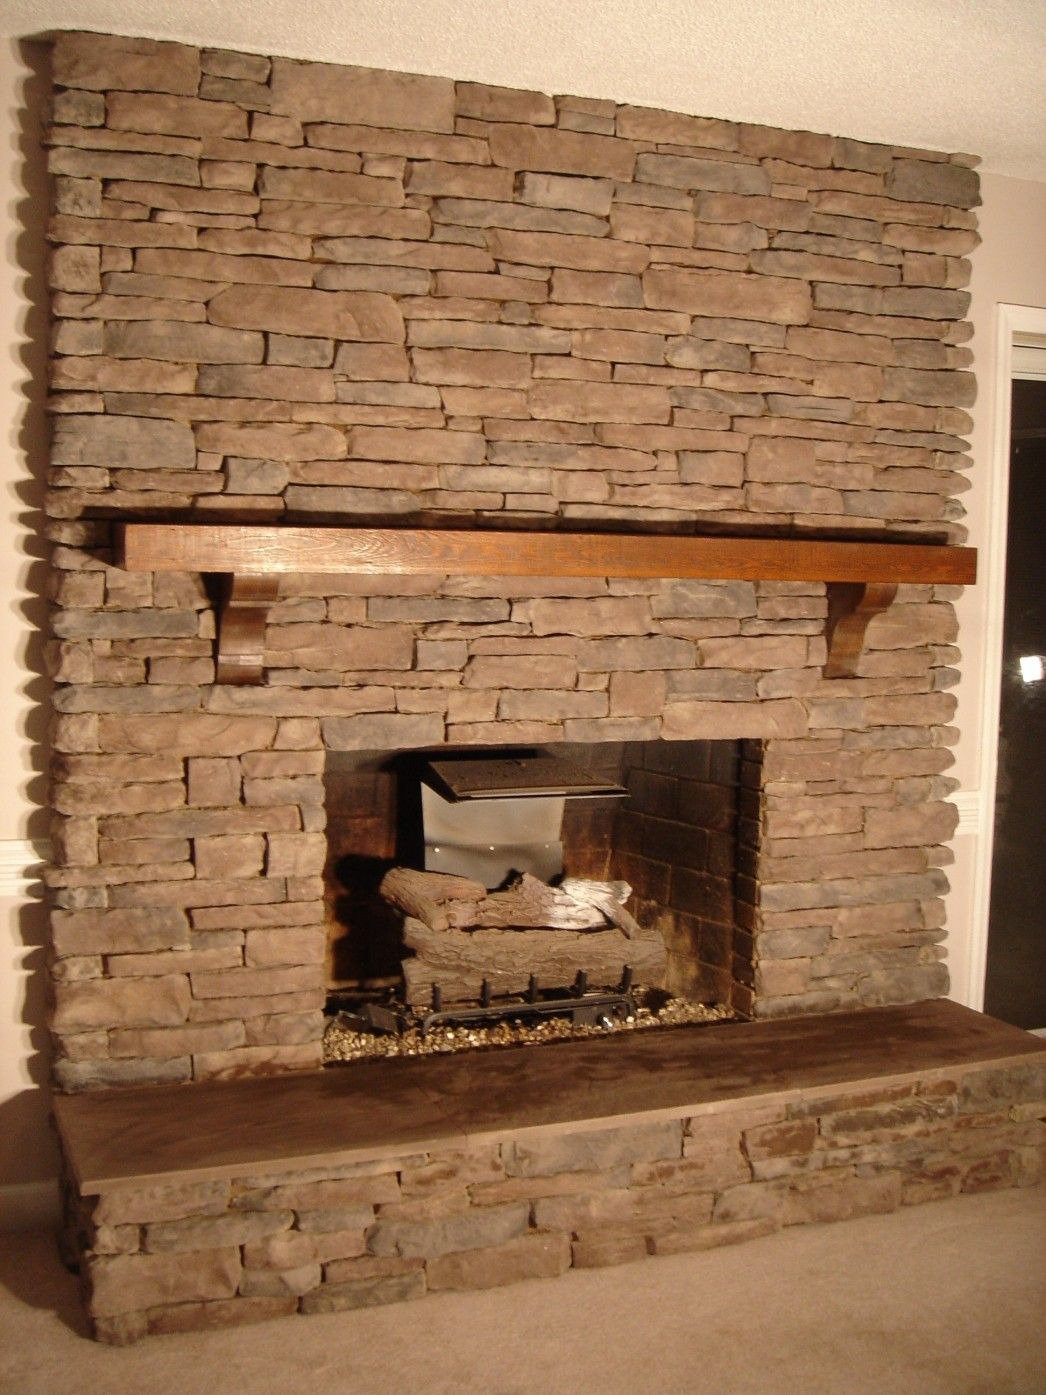 Fireplace designs with brick fireplace remodel colorado springs stone fireplace stone fireplace remodeling pictures stone fireplace accent wall do it yourself fireplace remodel decorative fireplace designs with brick solutioingenieria Gallery